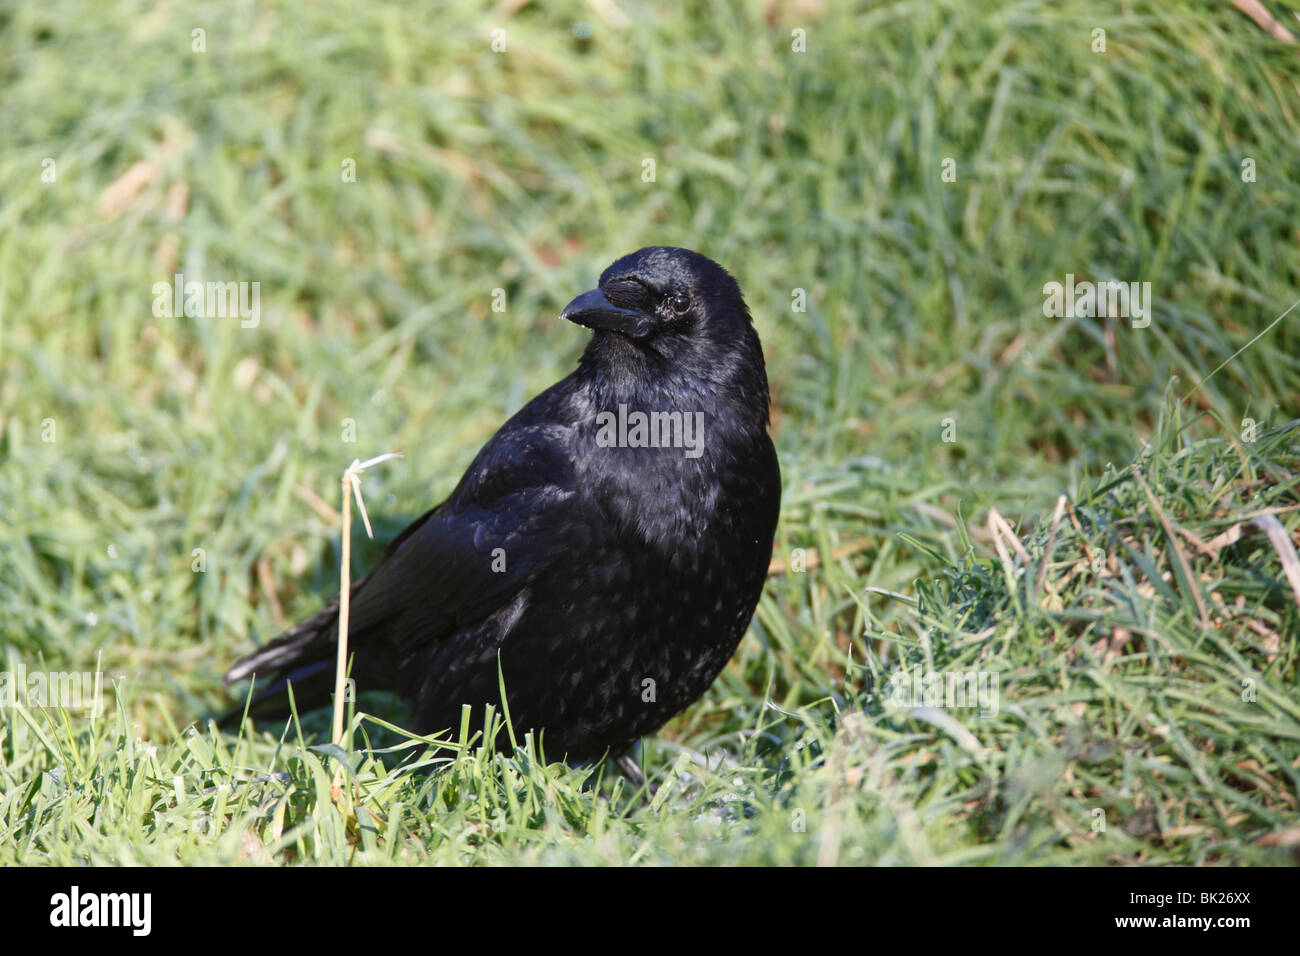 carrion crow (Corvus corone) looking for food in long grass - Stock Image